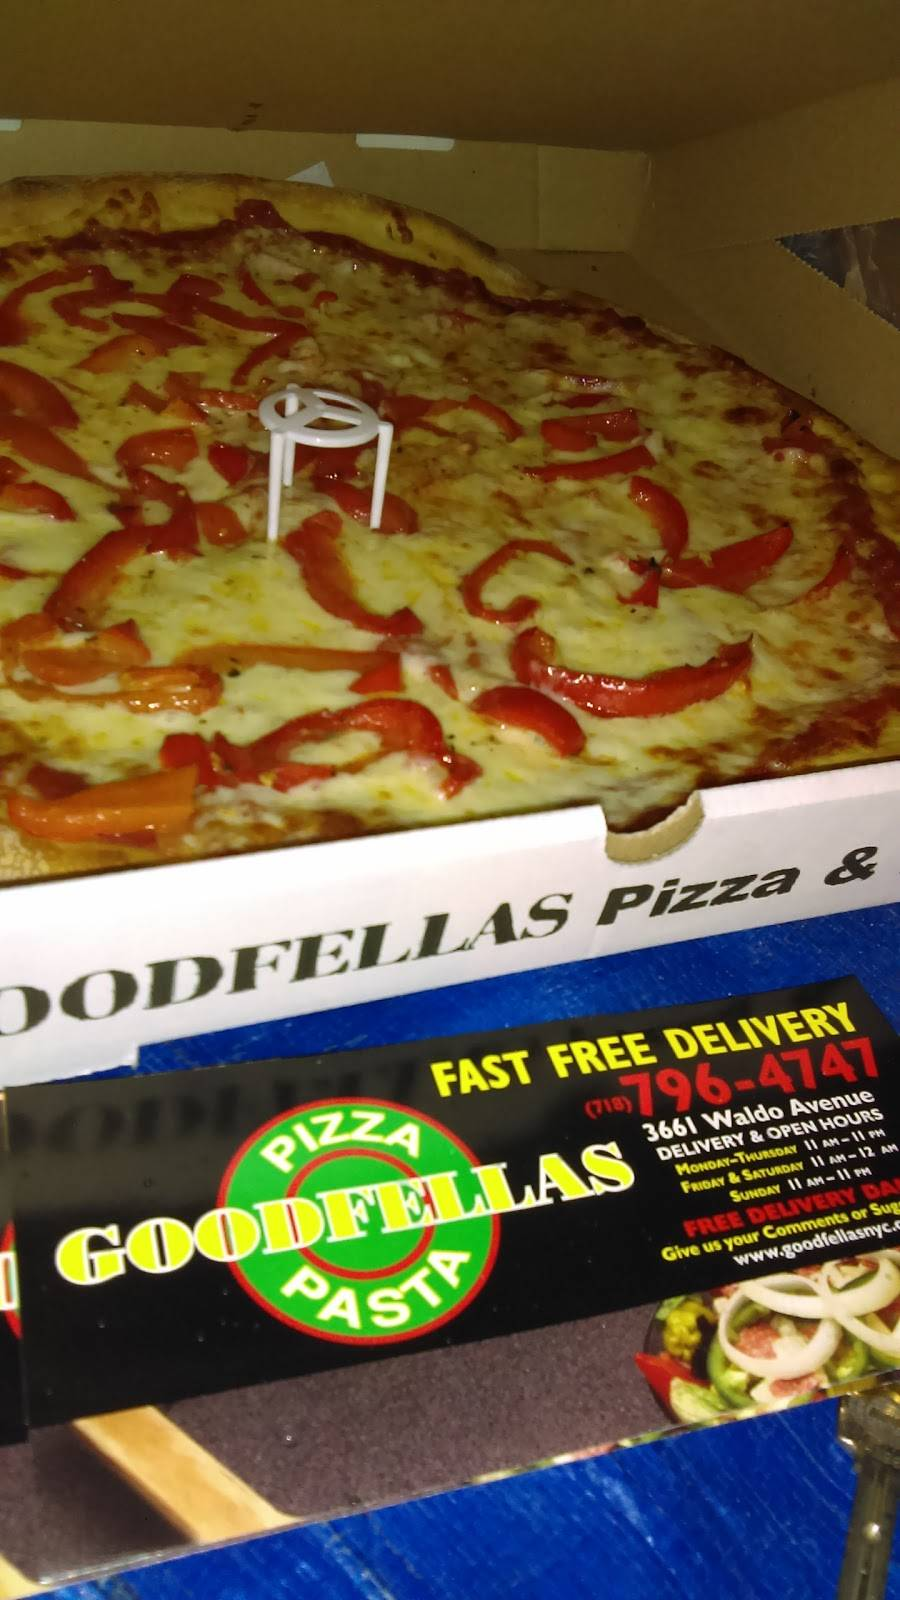 Goodfellas | meal delivery | 3661 Waldo Ave, Bronx, NY 10463, USA | 7187964747 OR +1 718-796-4747